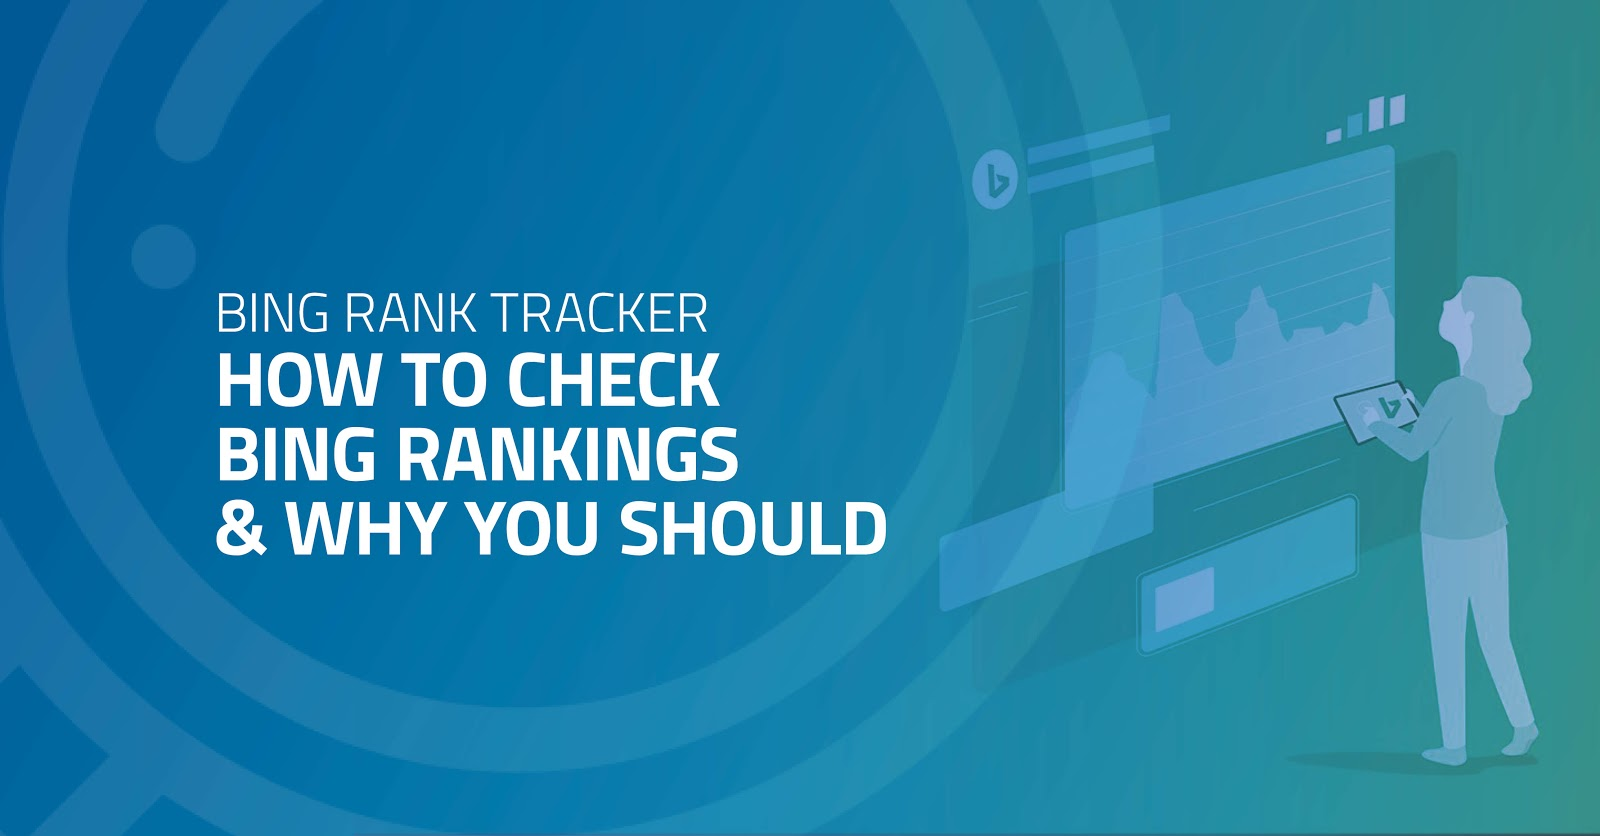 Bing Rank Tracker: How to Check Bing Rankings & Why You Should